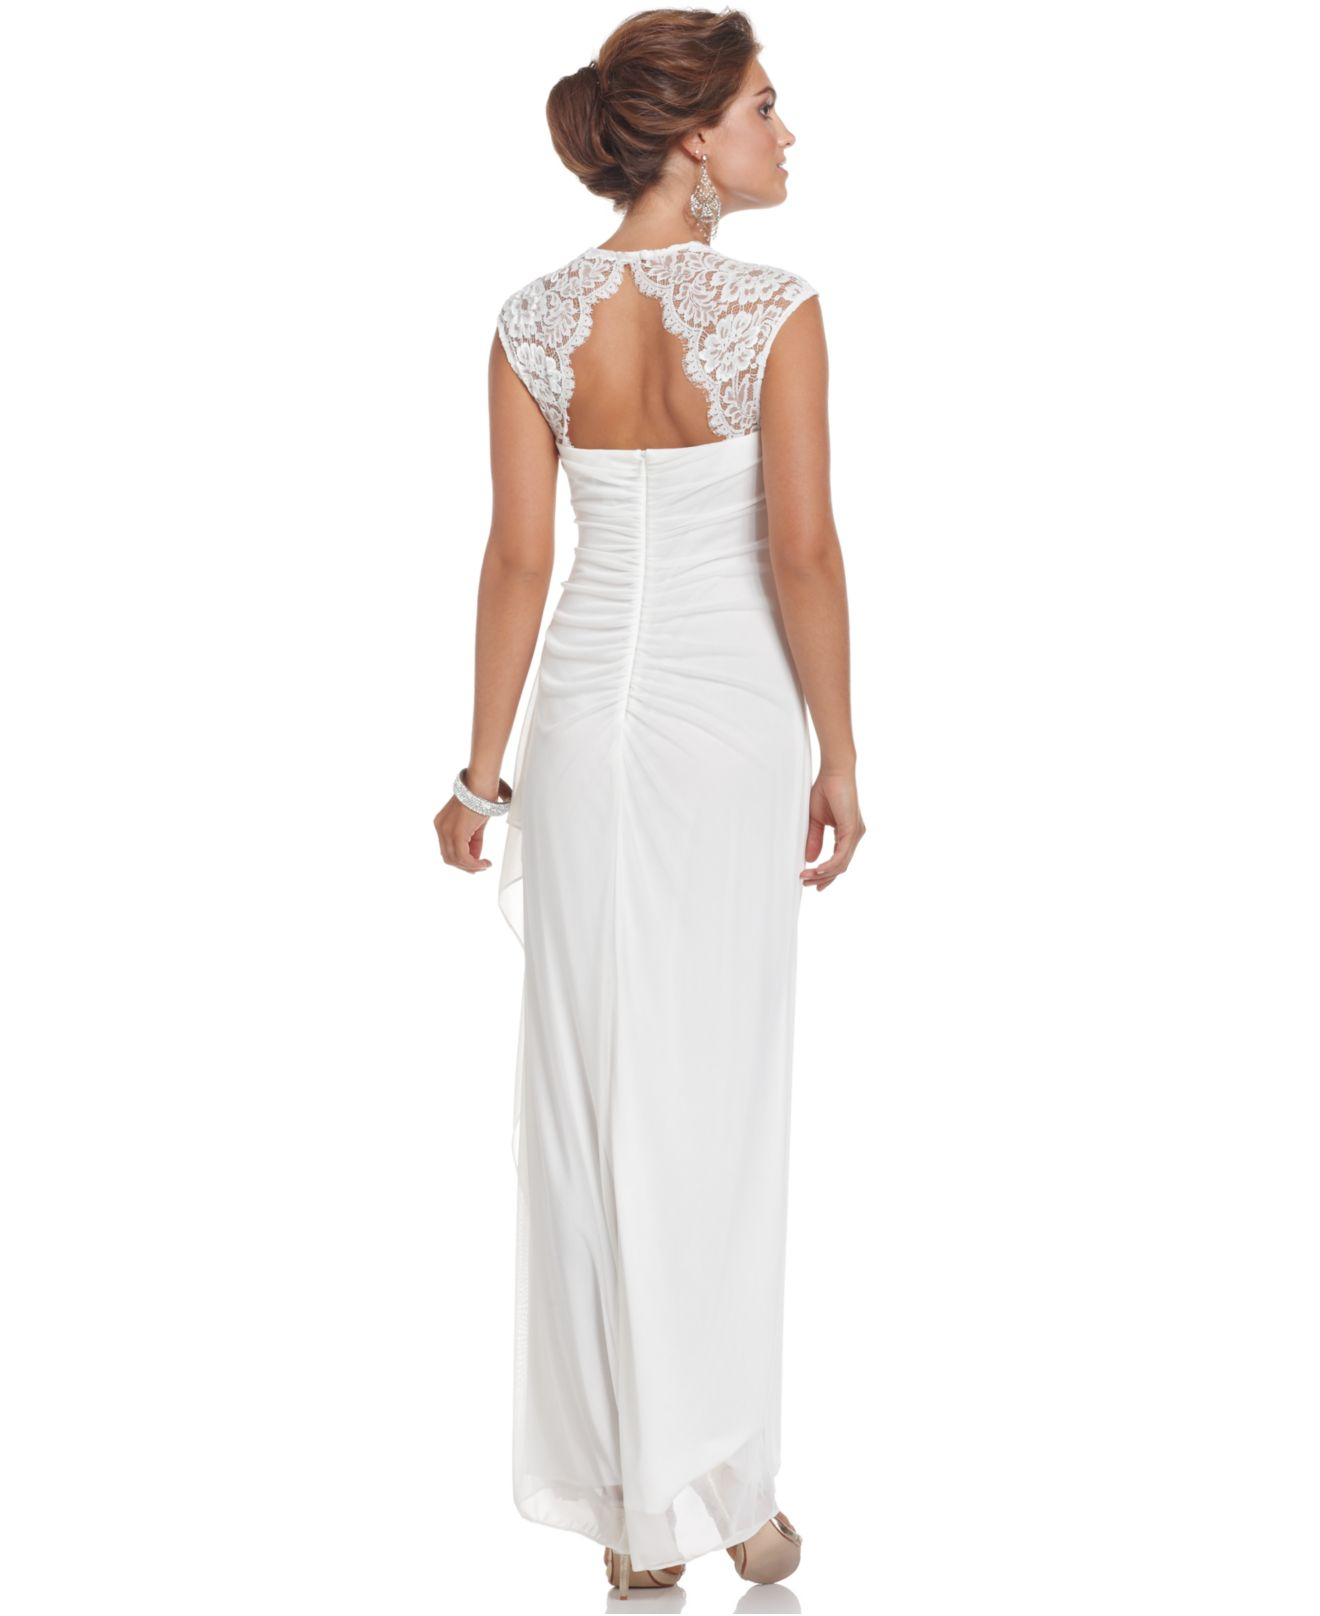 Lyst - Xscape Cap-Sleeve Lace Gown in White